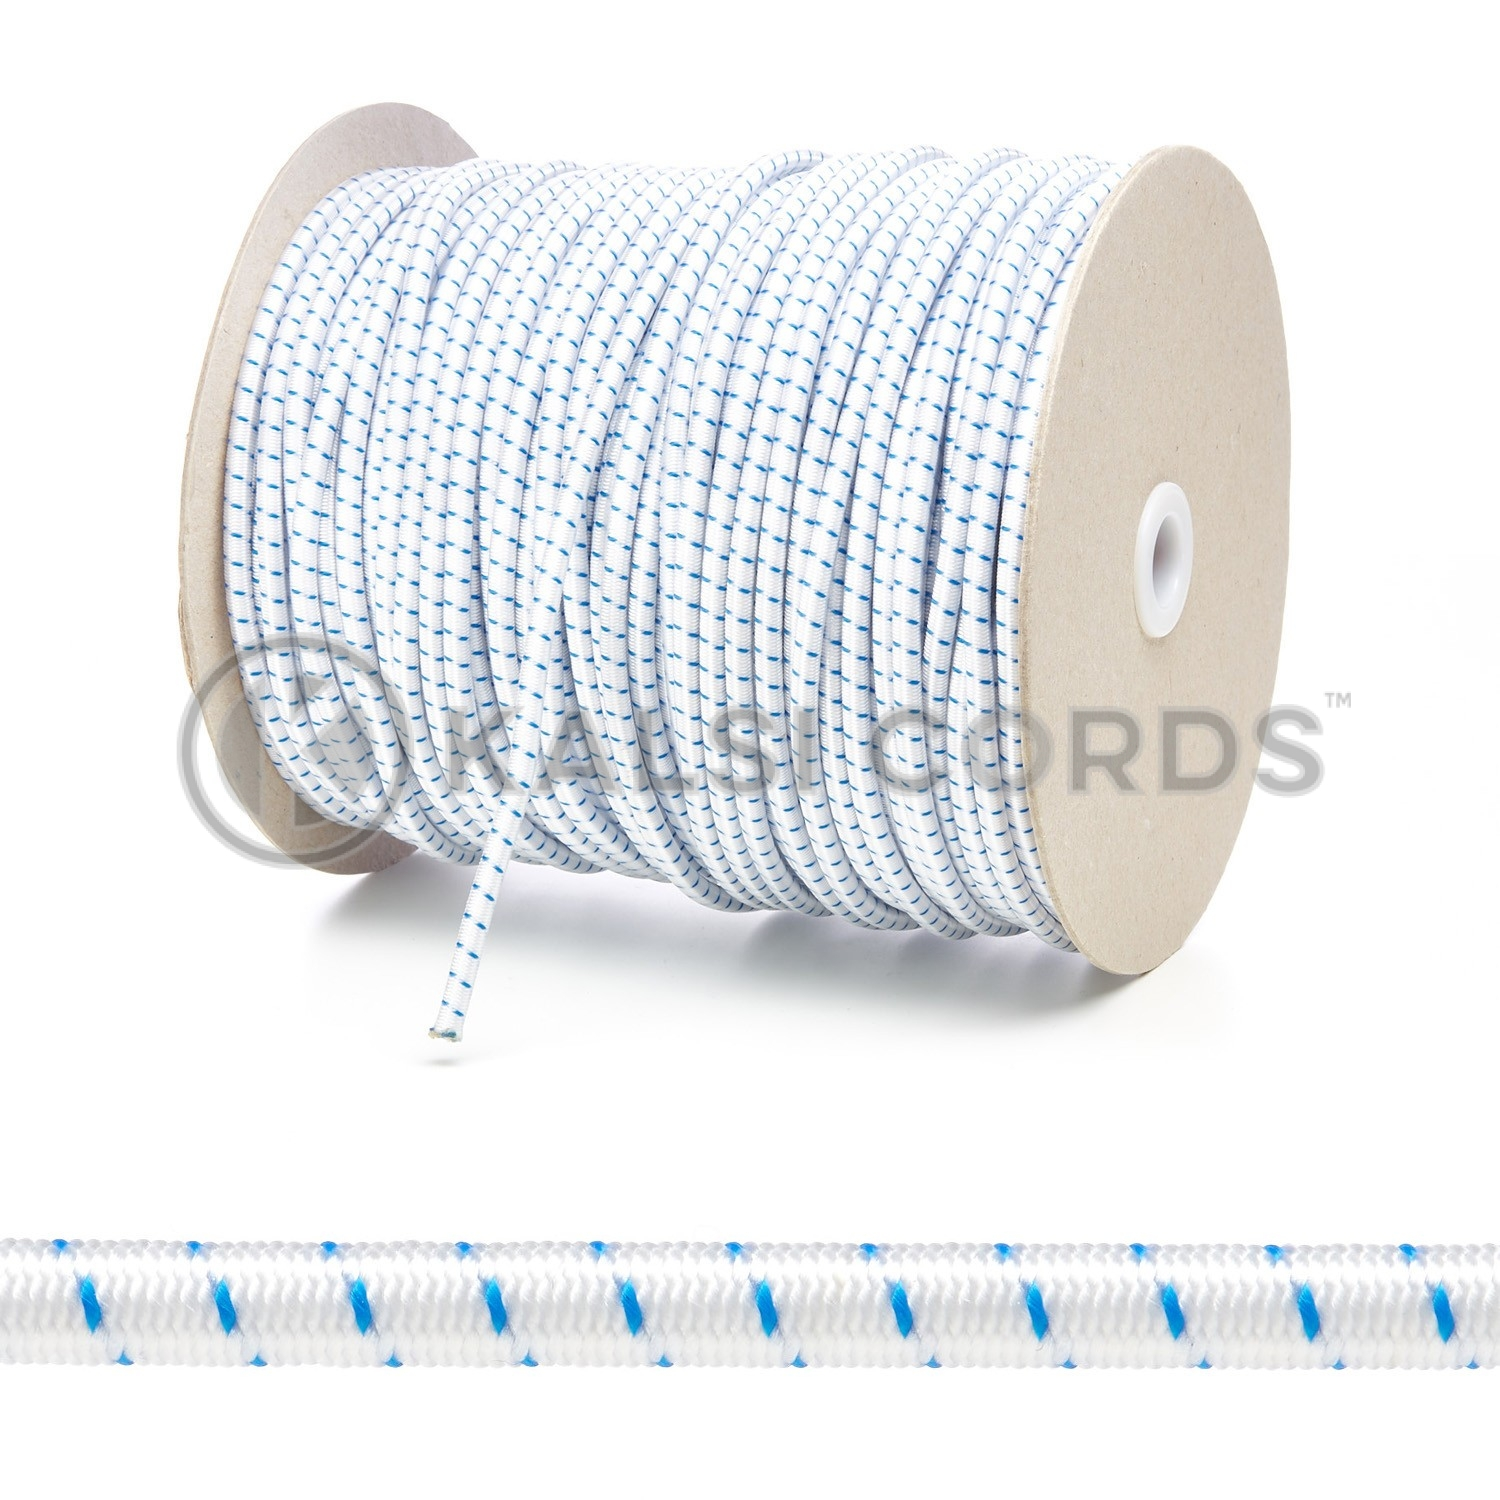 PE114 5mm Round Bungee Shock Cord Natural White with Royal Blue Fleck Edit 3 Kalsi Cords 1